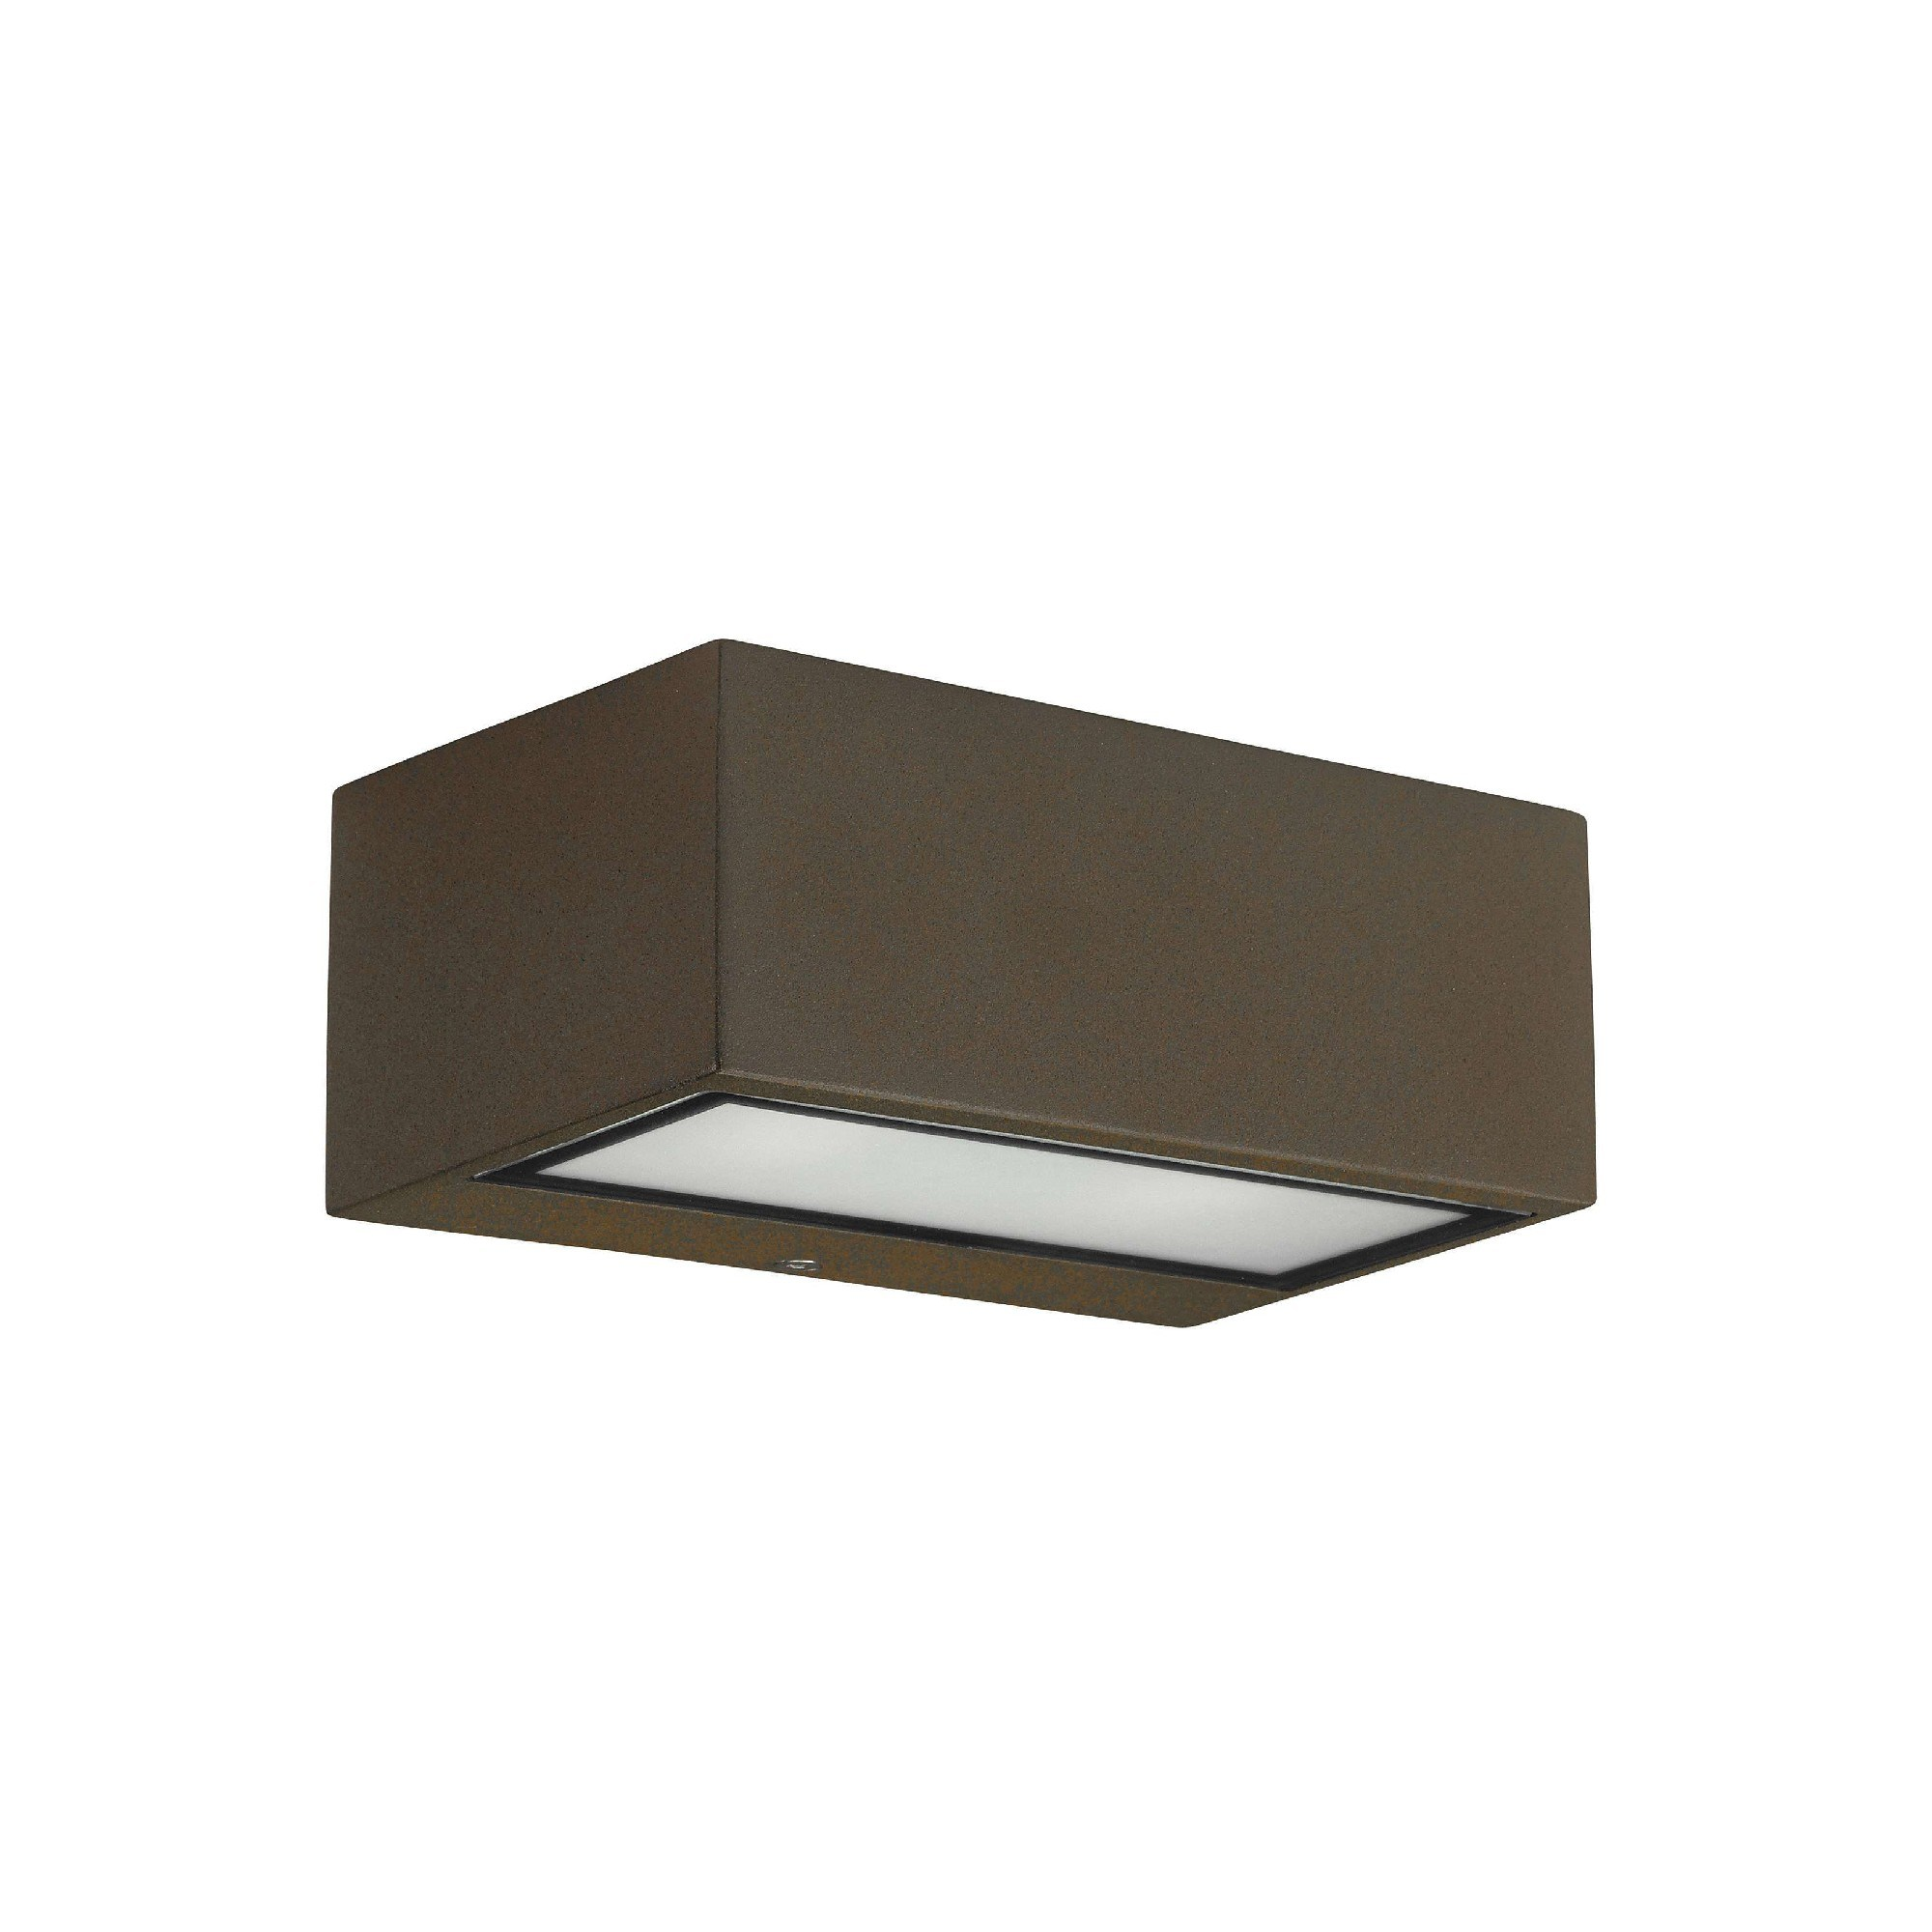 Leds C4 OUTDOOR 05 9177 J6 B8V1 Ventilatoren